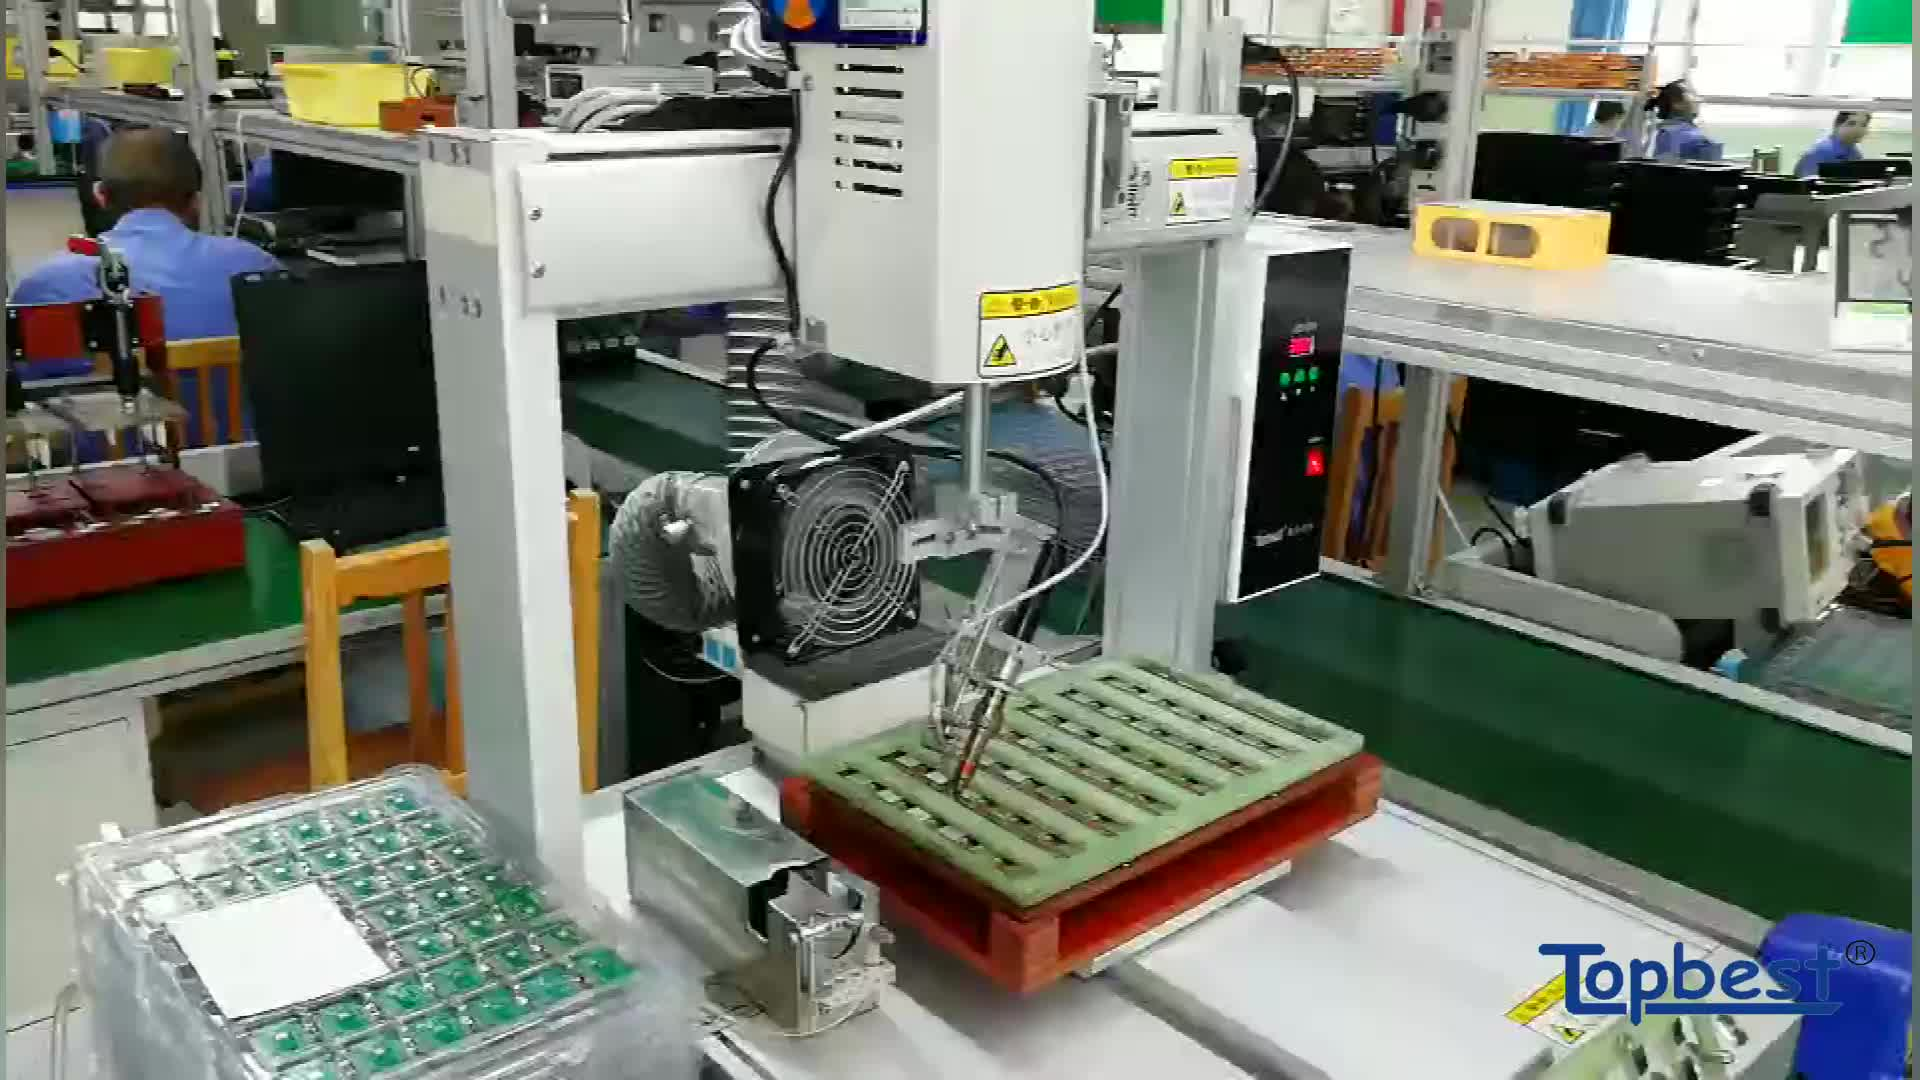 automatic feeding soldering machine with spot soldering and drag soldering